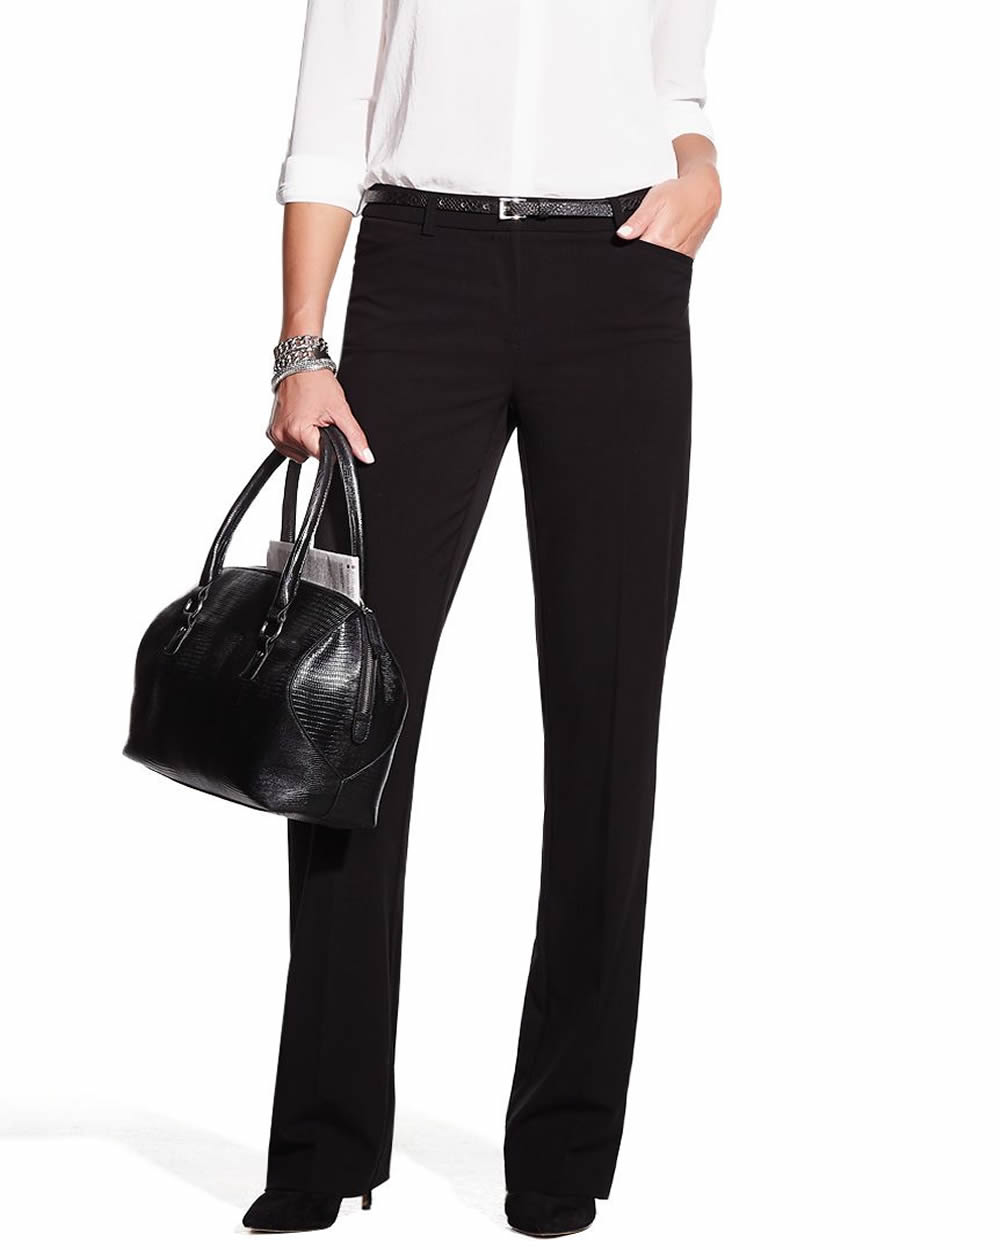 Find great deals on eBay for mens bootcut dress pants. Shop with confidence.